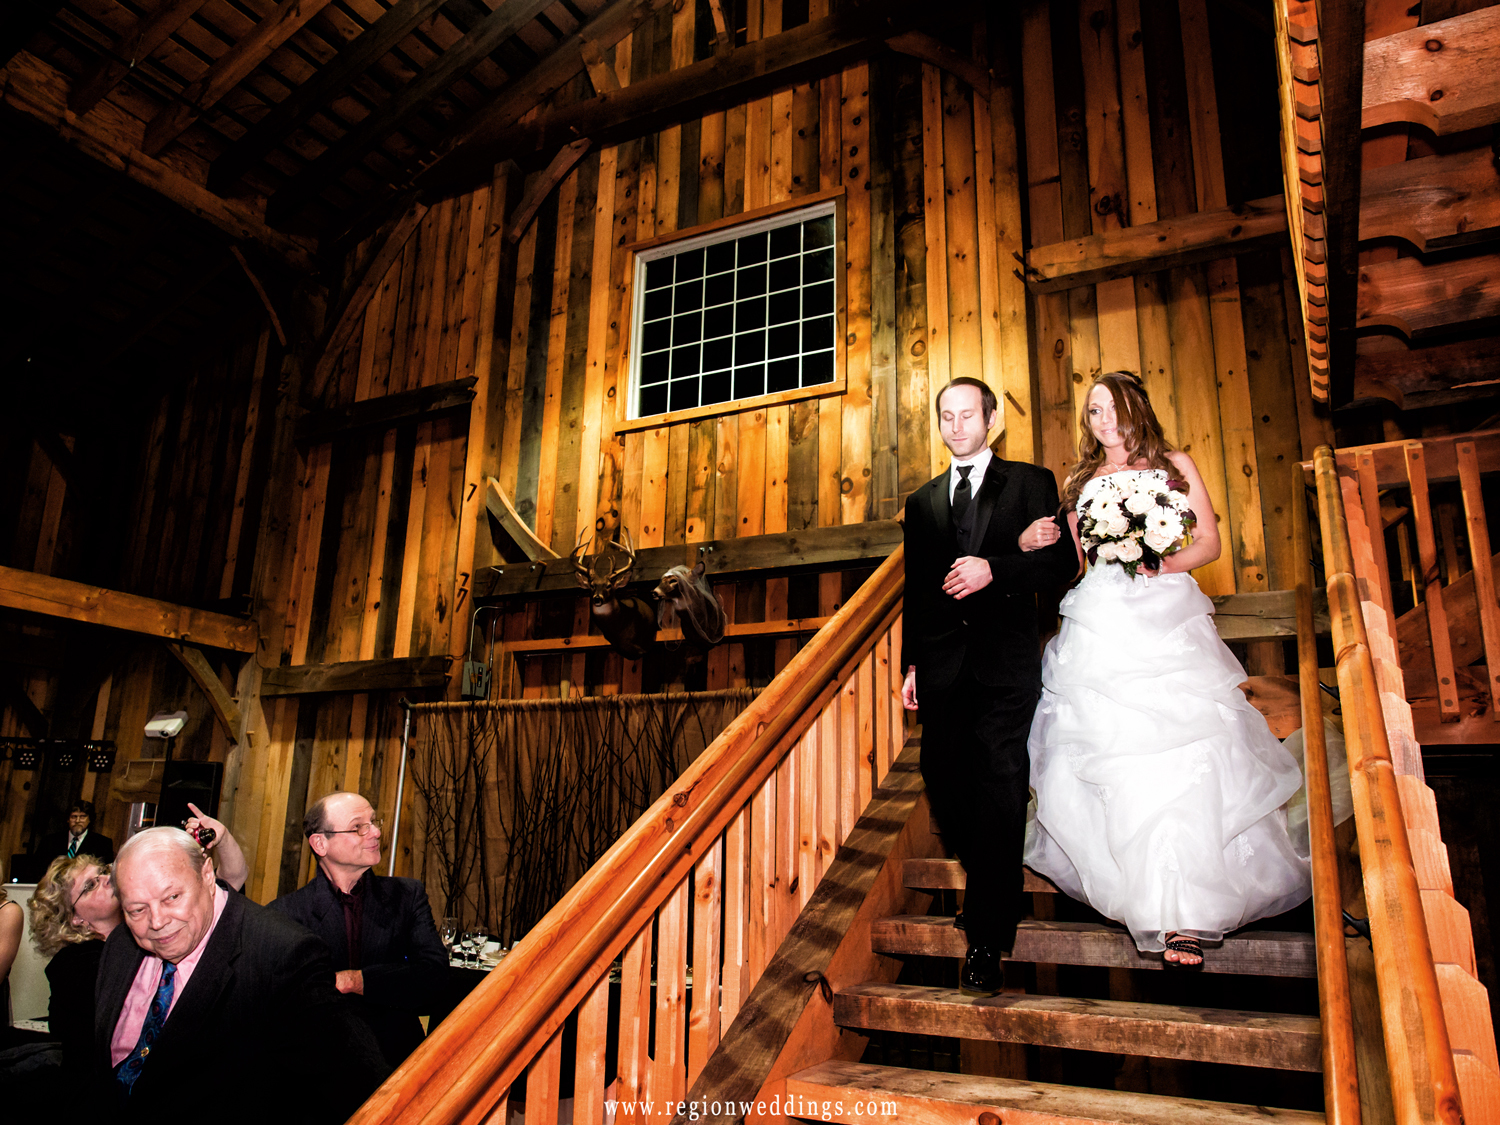 The bride is escorted down the rustic stair case by her brother during her winter wedding.